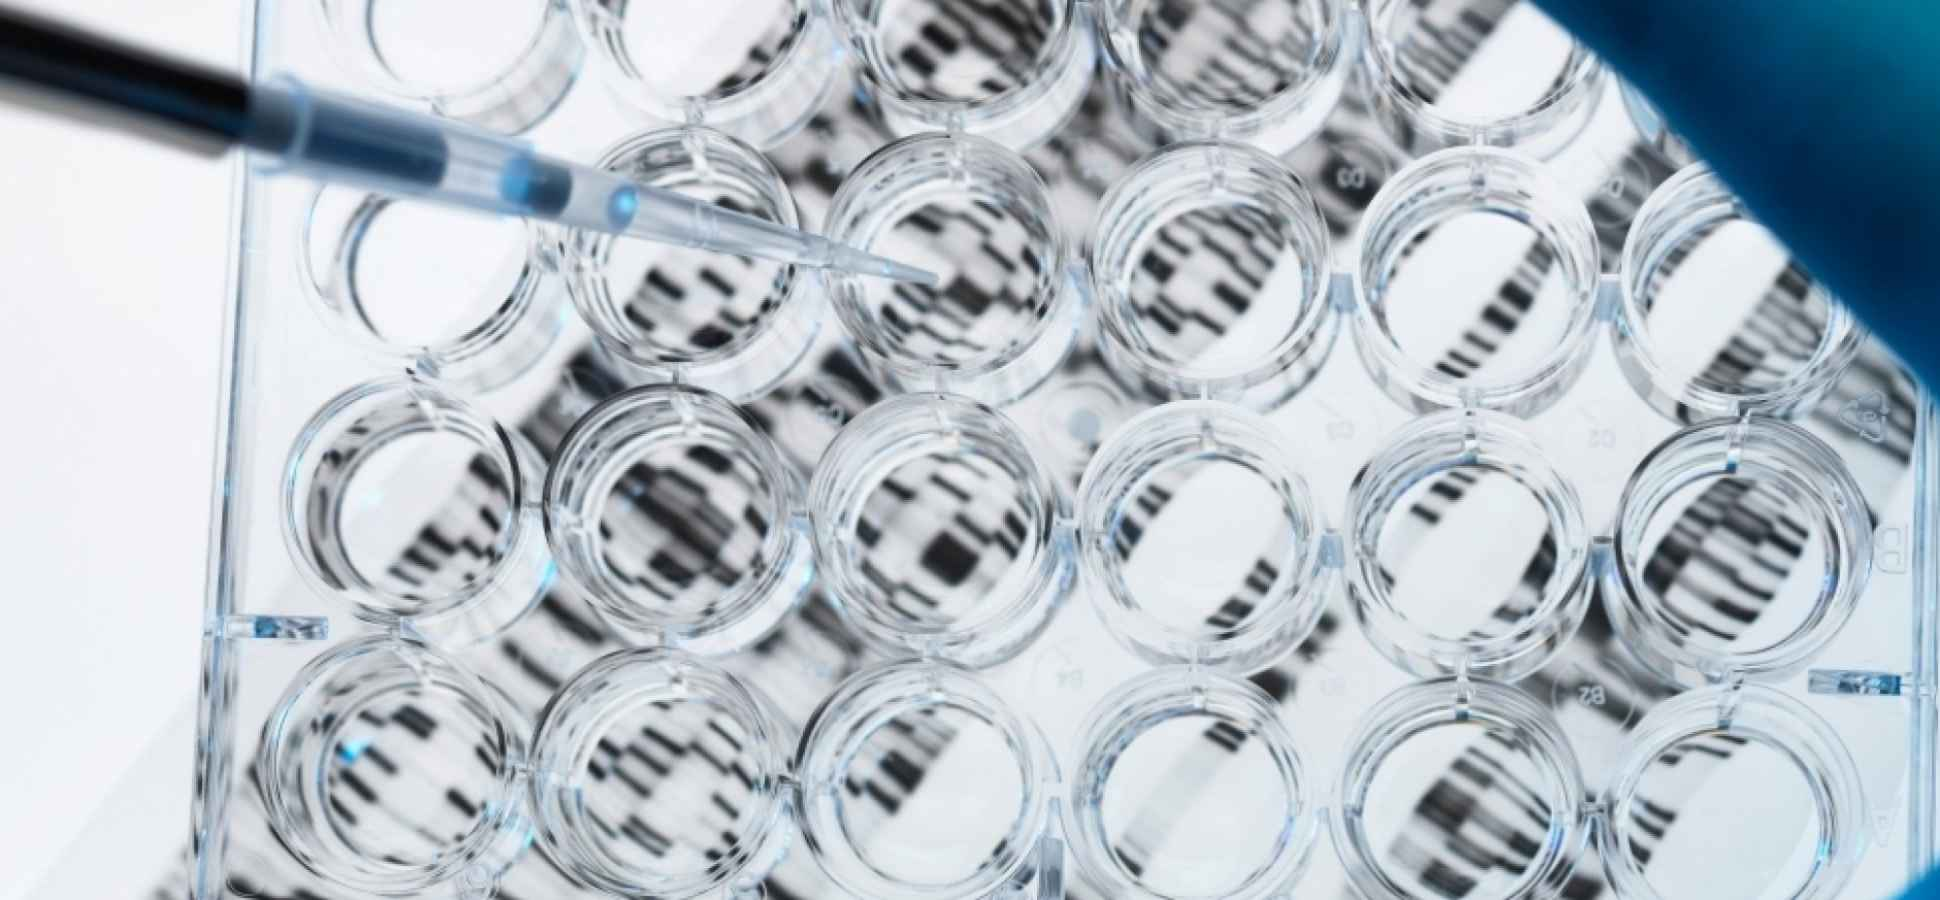 3 Questions That Reveal Your Entrepreneurial DNA